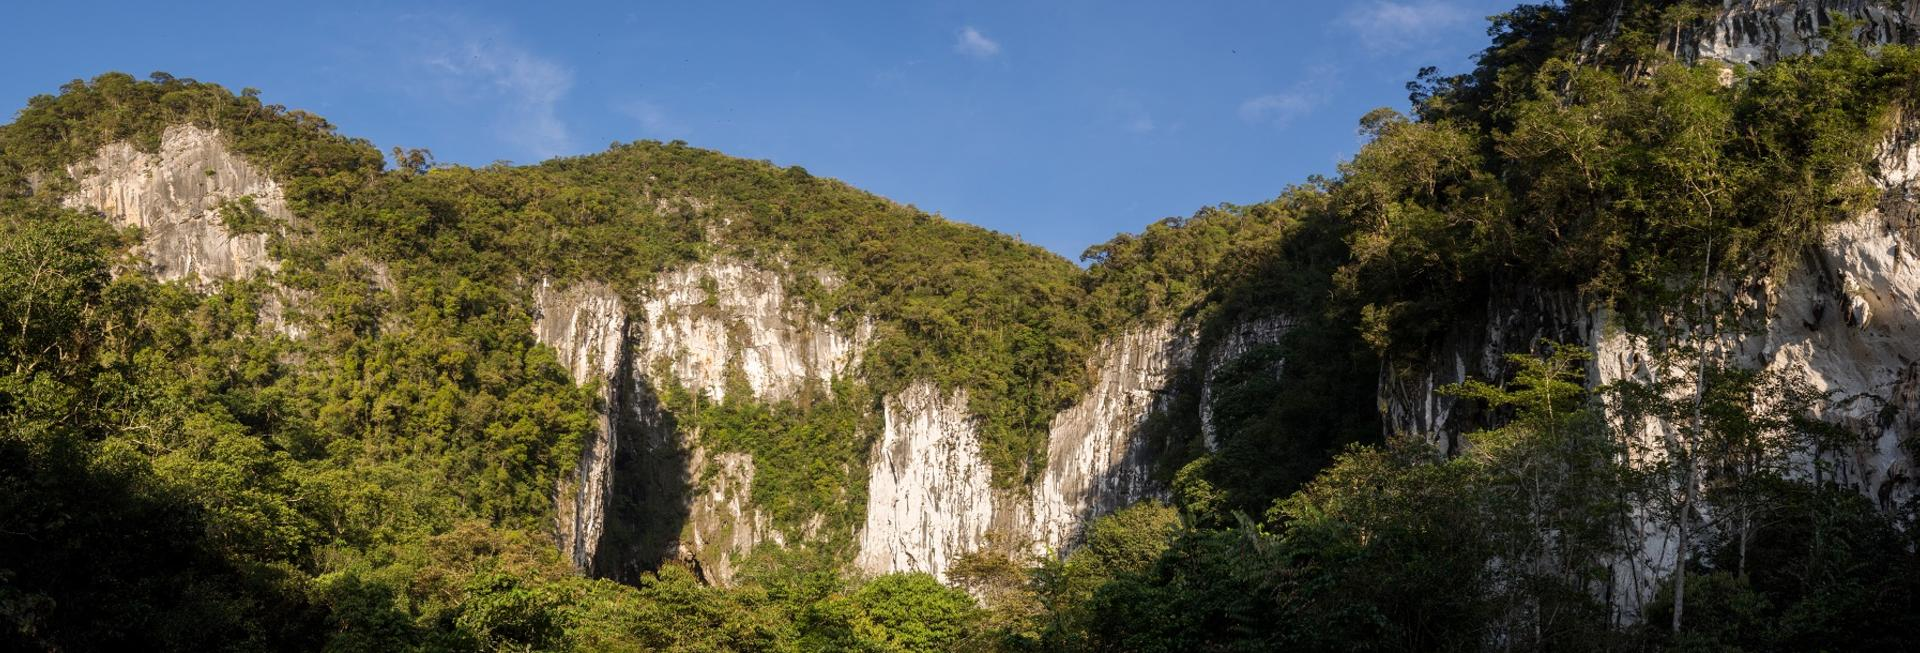 Mulu National Park, Borneo